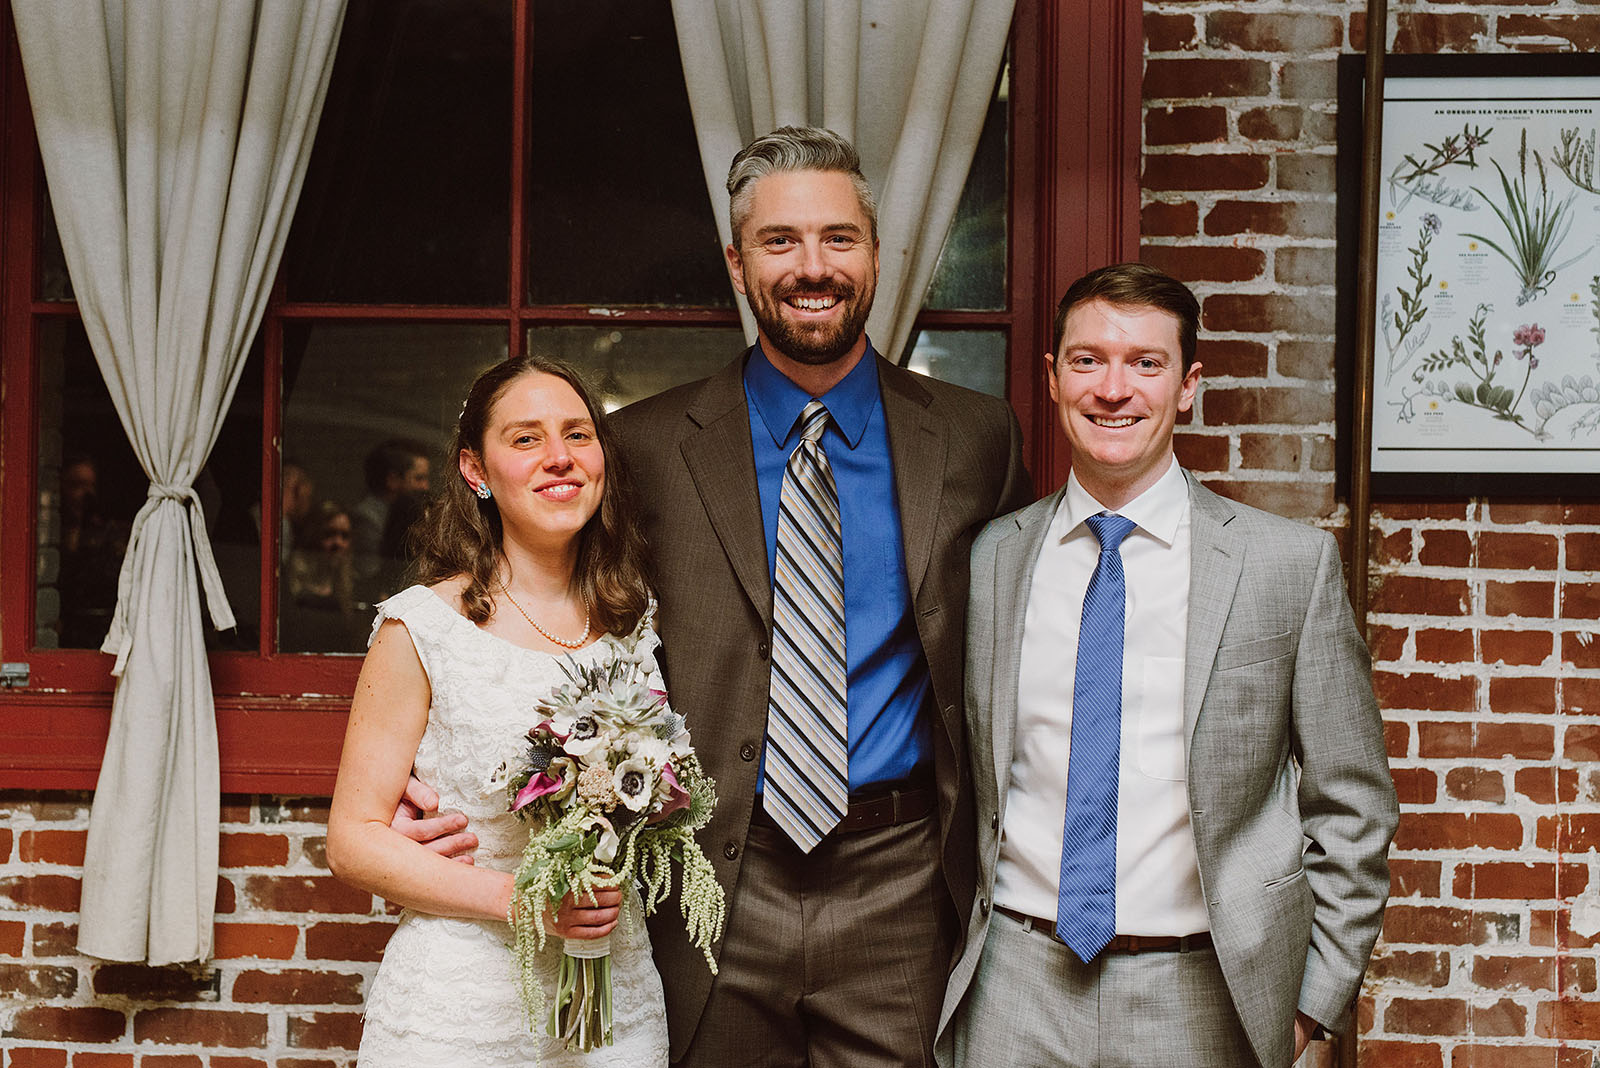 Portrait of bride and groom with their officiant at an Intimate Restaurant Wedding in Portland, OR